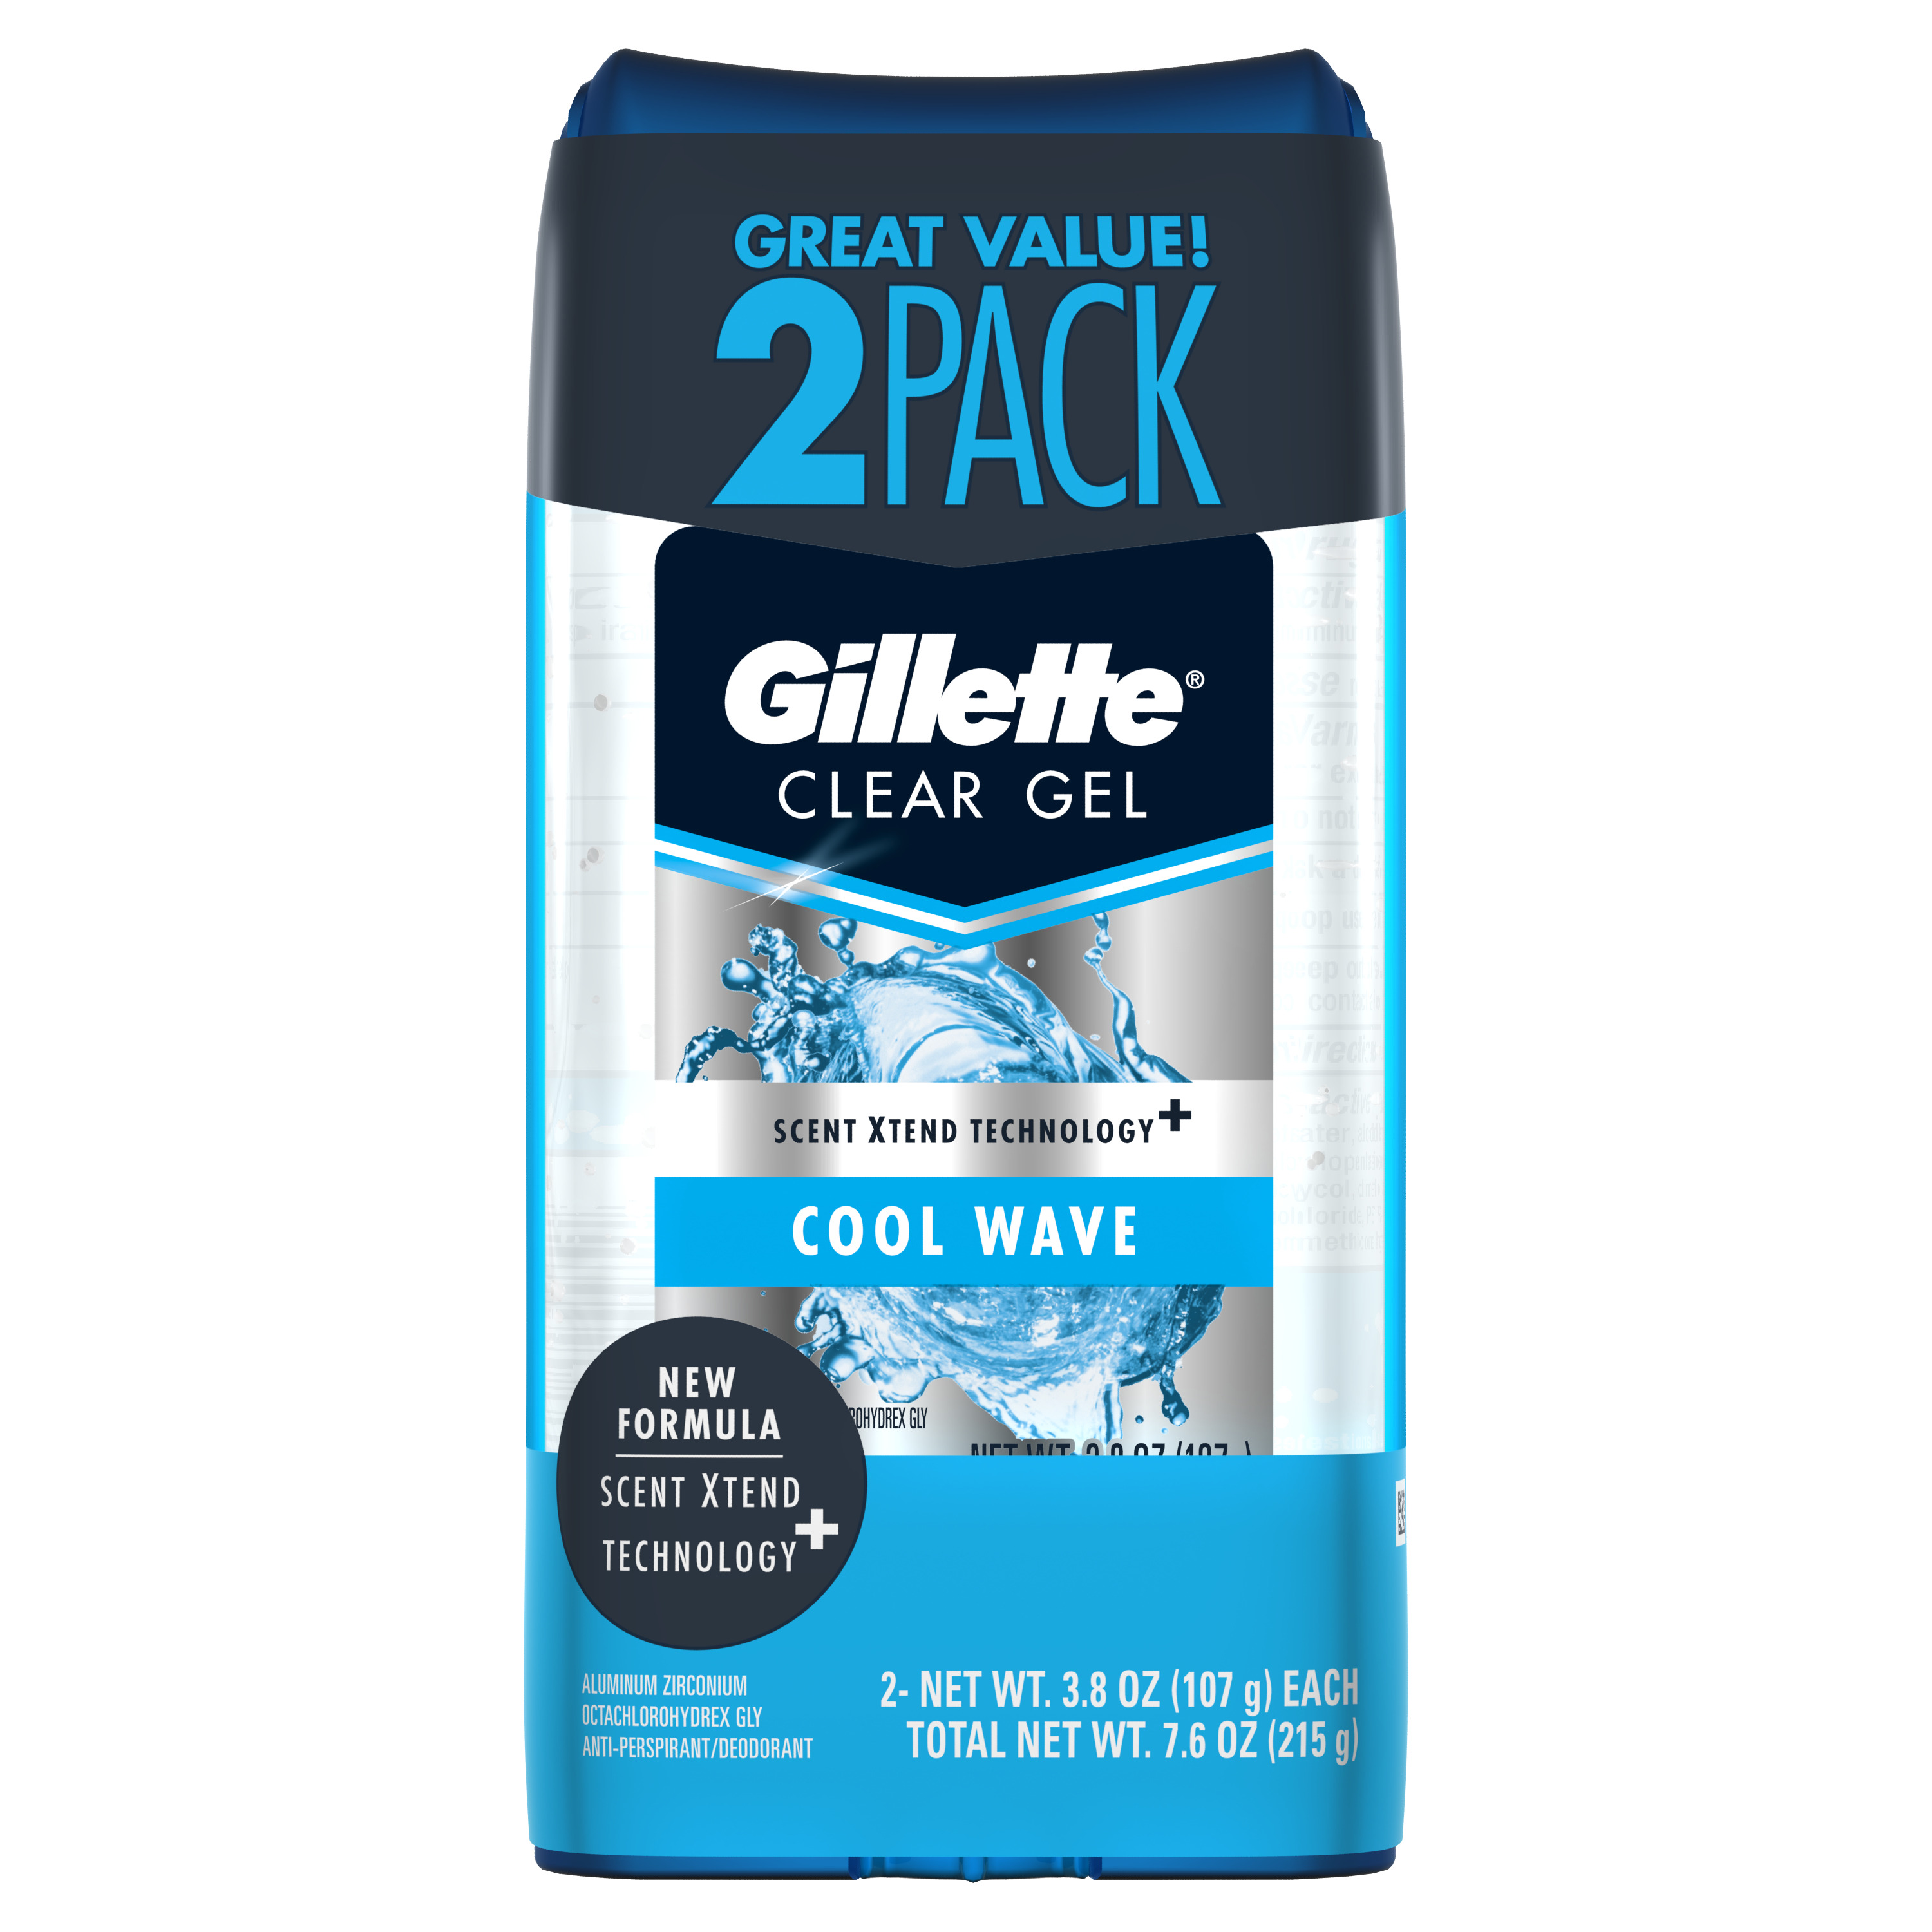 Gillette Cool Wave Clear Gel Men's Antiperspirant and Deodorant, 2 Pack, 3.8 oz each